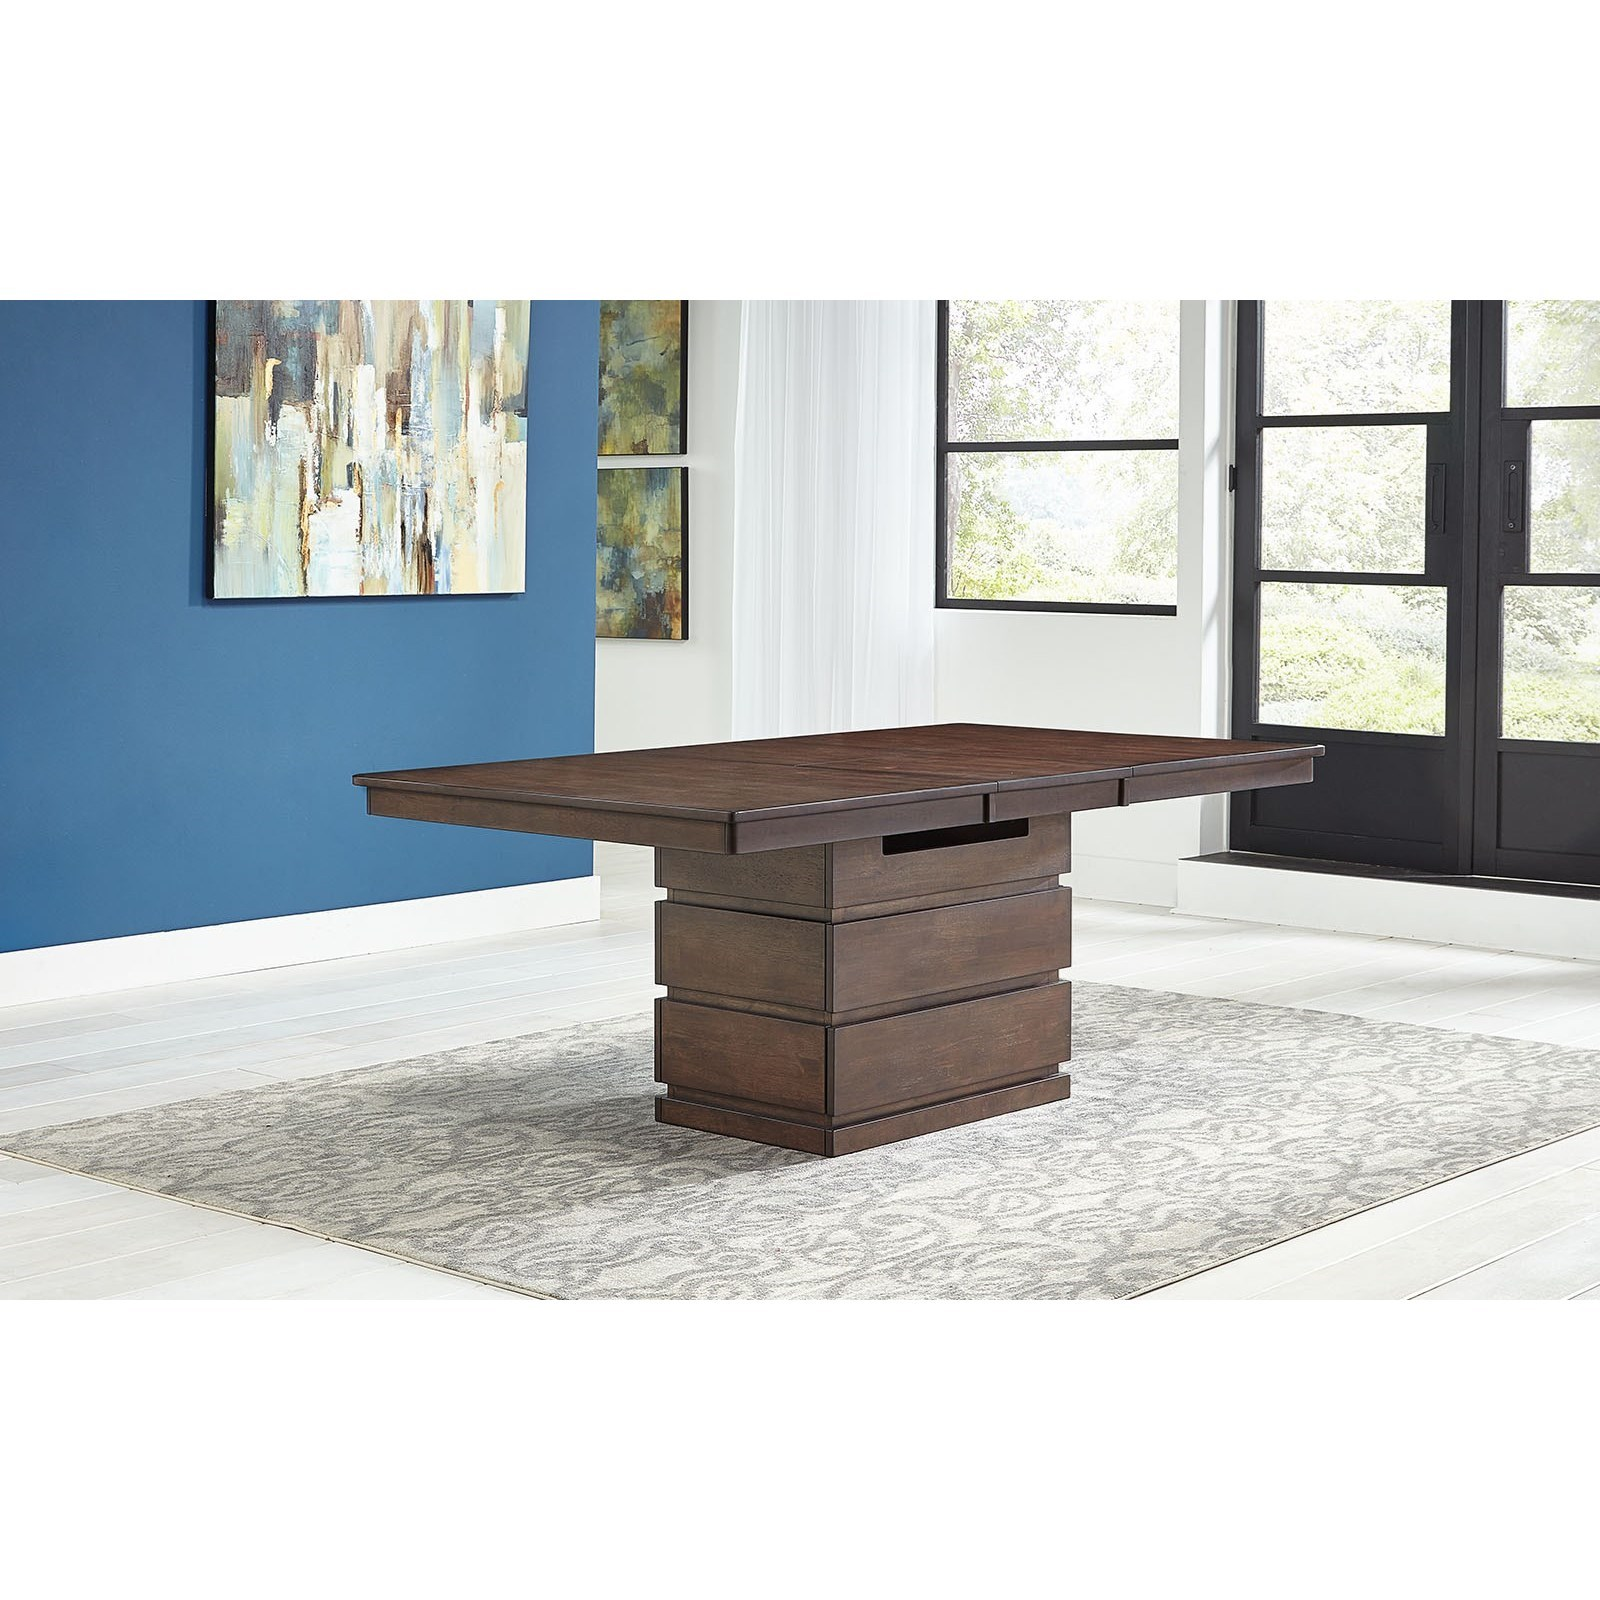 Chesney Convertible Height Storage Table  by AAmerica at Van Hill Furniture